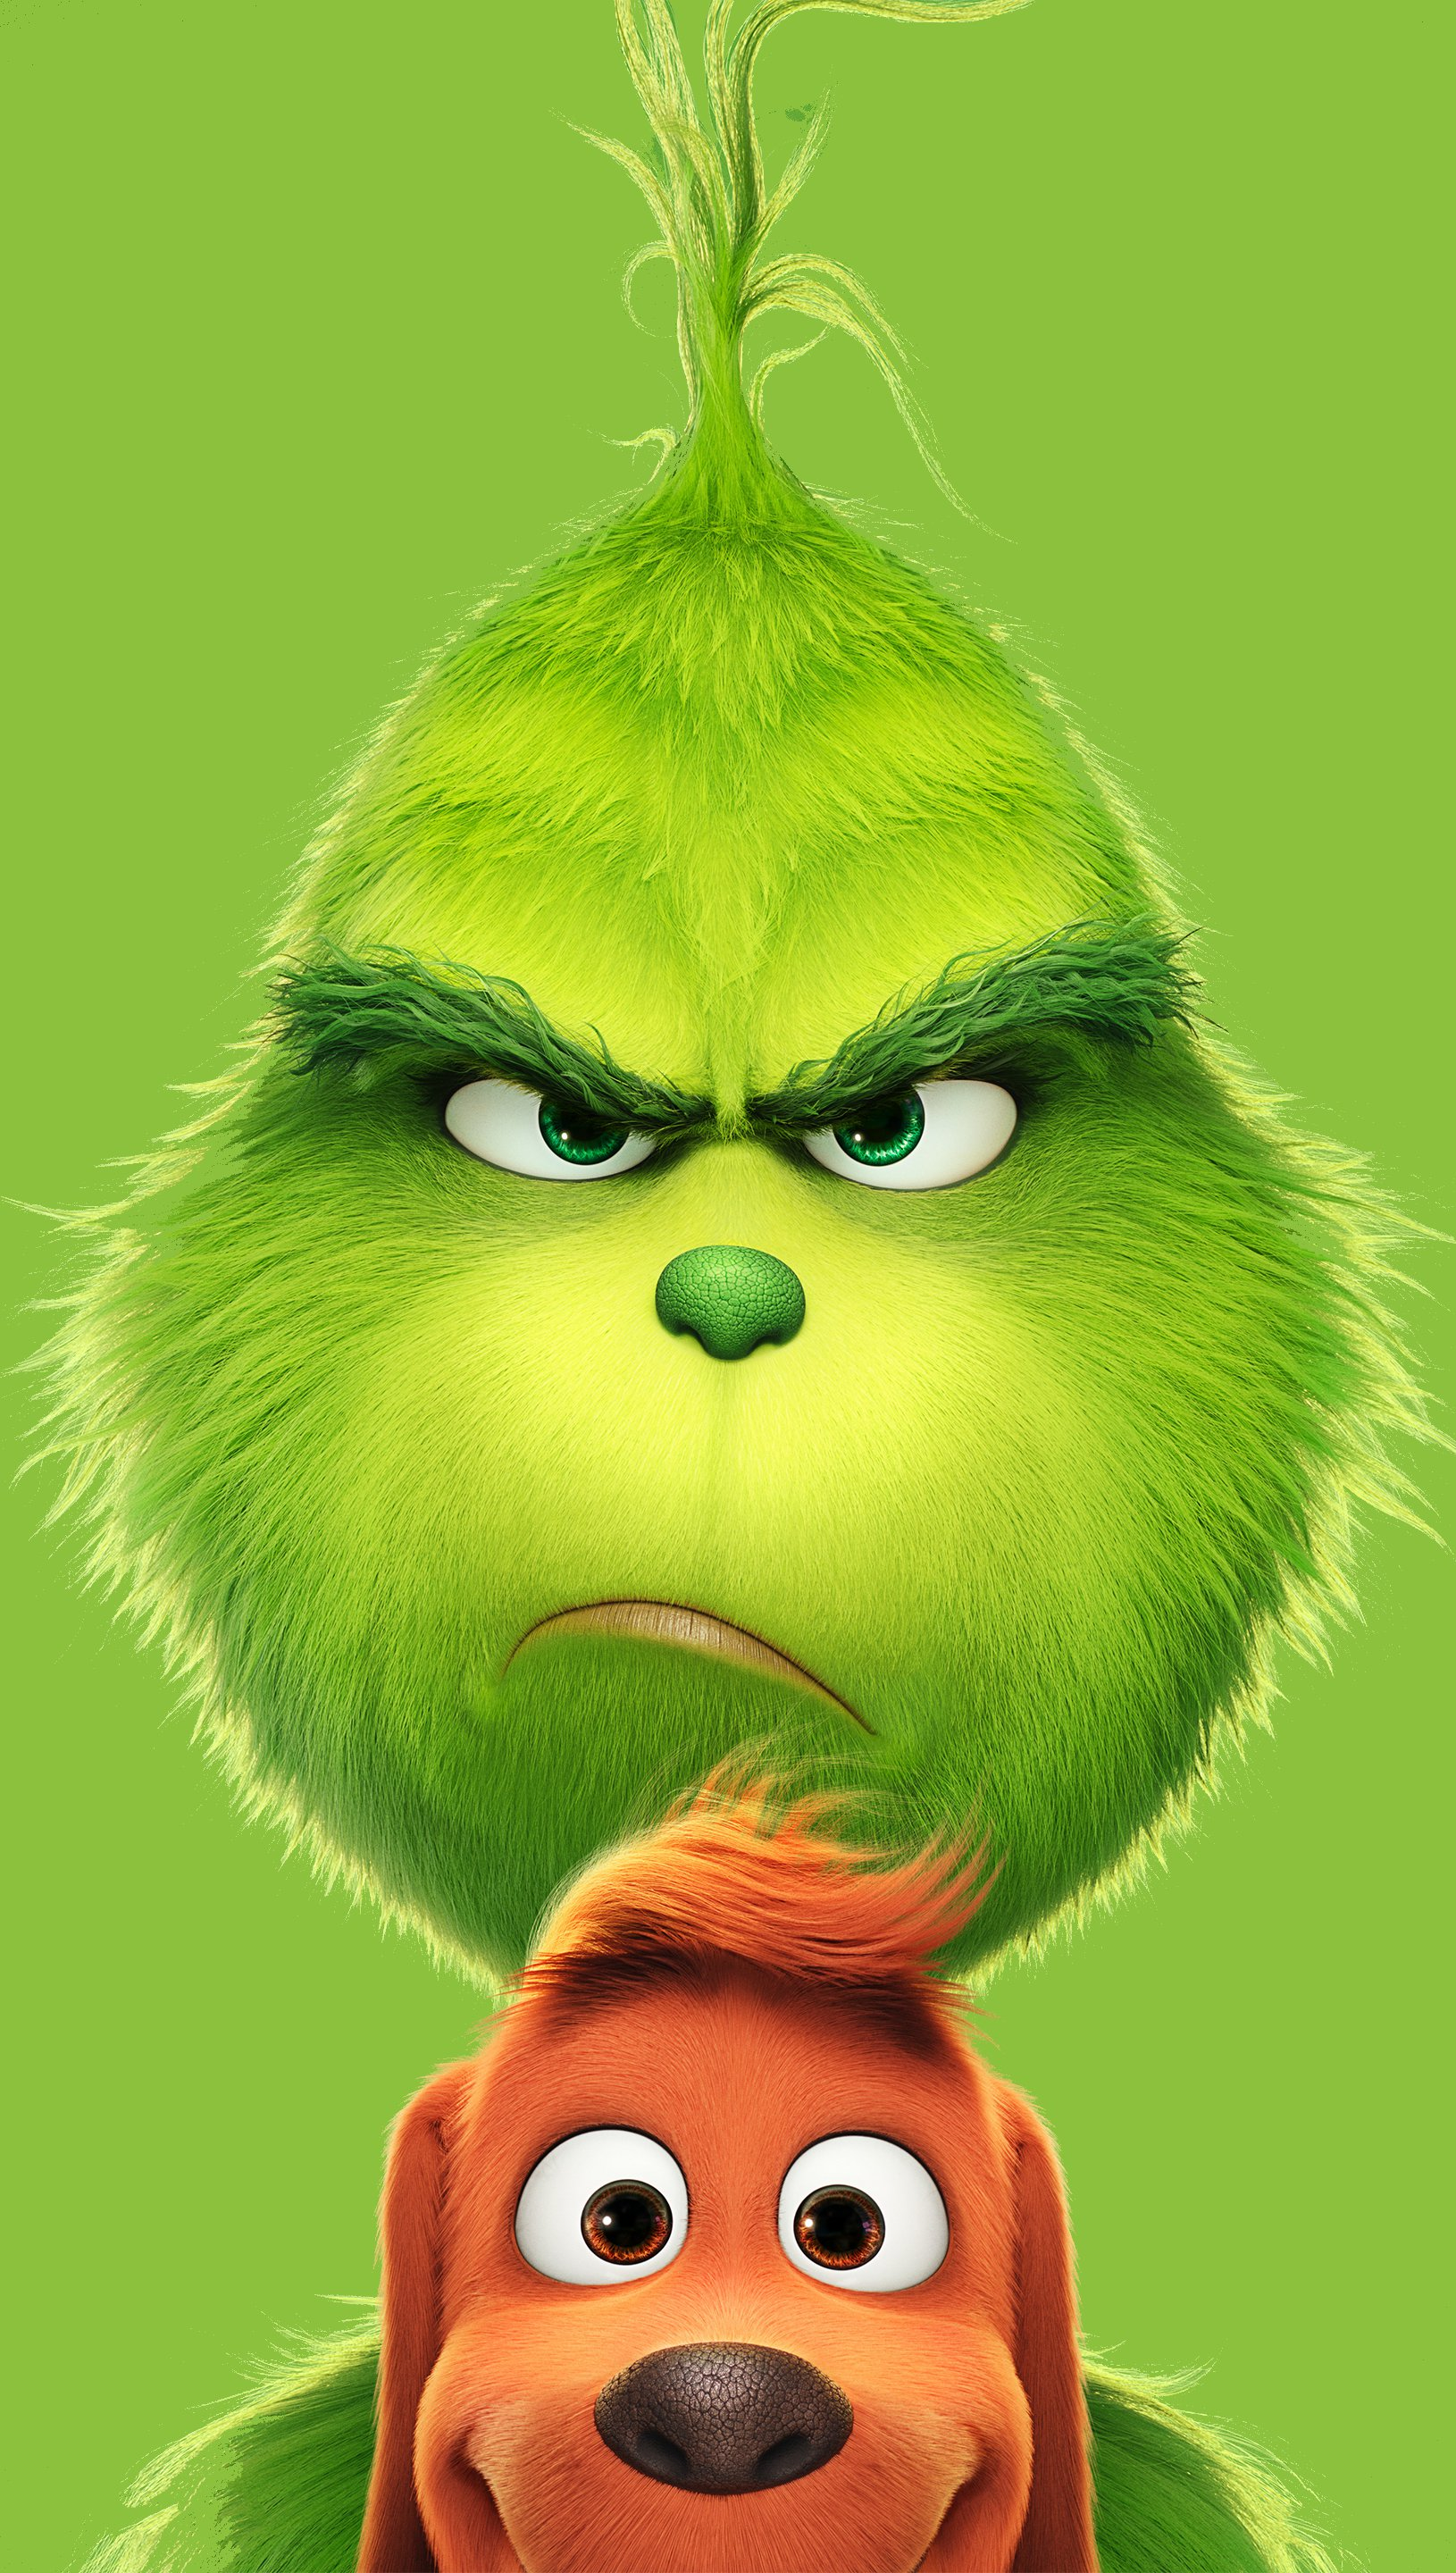 Wallpaper The Grinch Movie Animated film Vertical